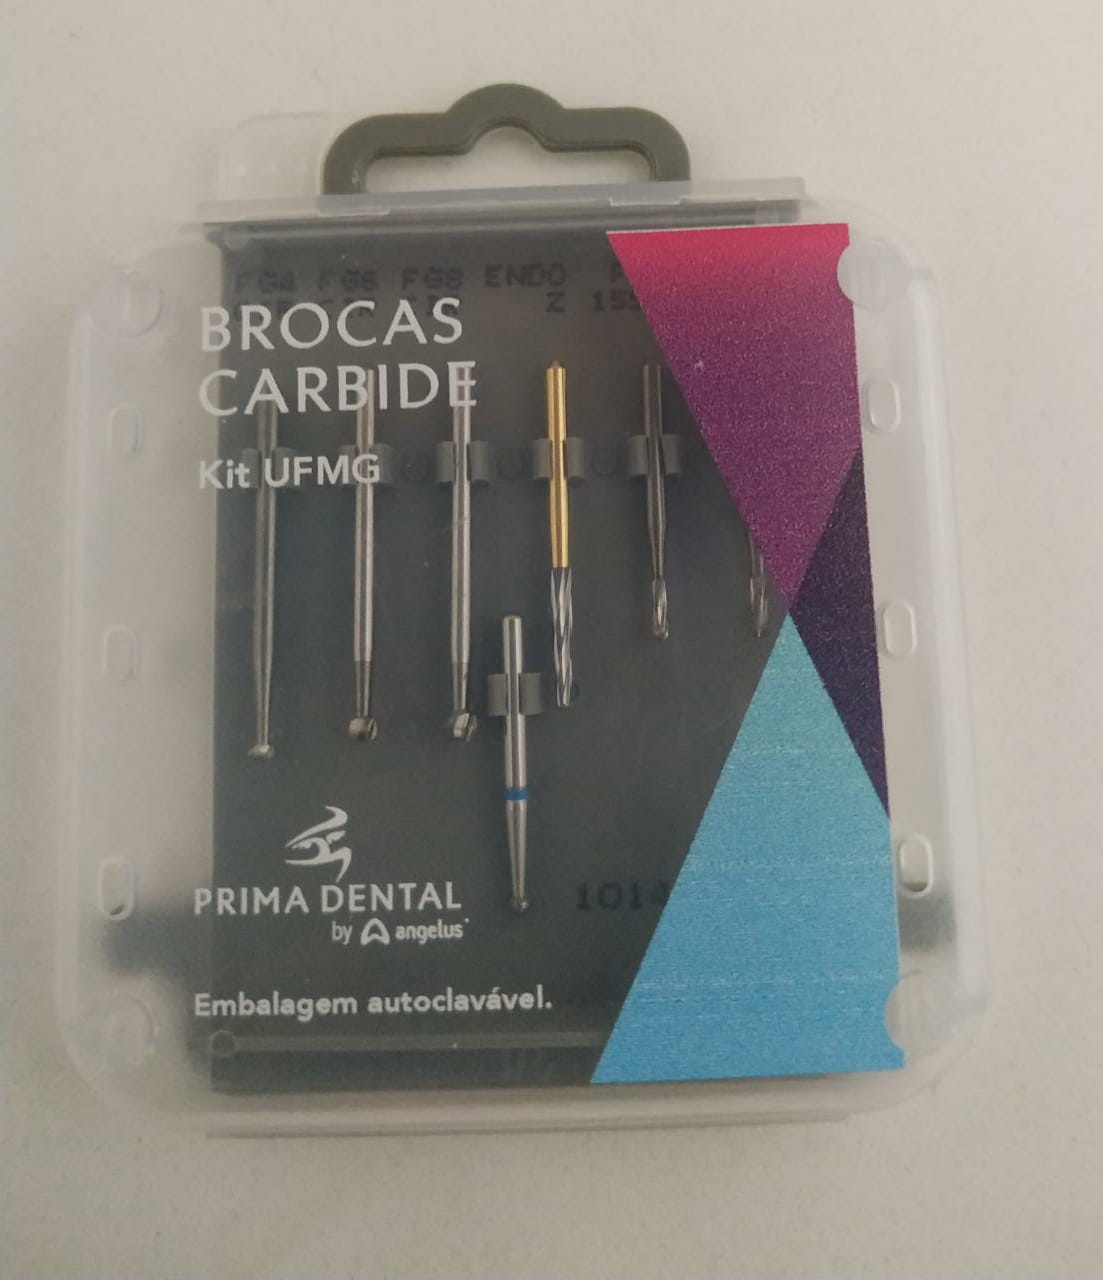 KIT BROCAS UNITRI - PRIMA DENTAL ANGELUS